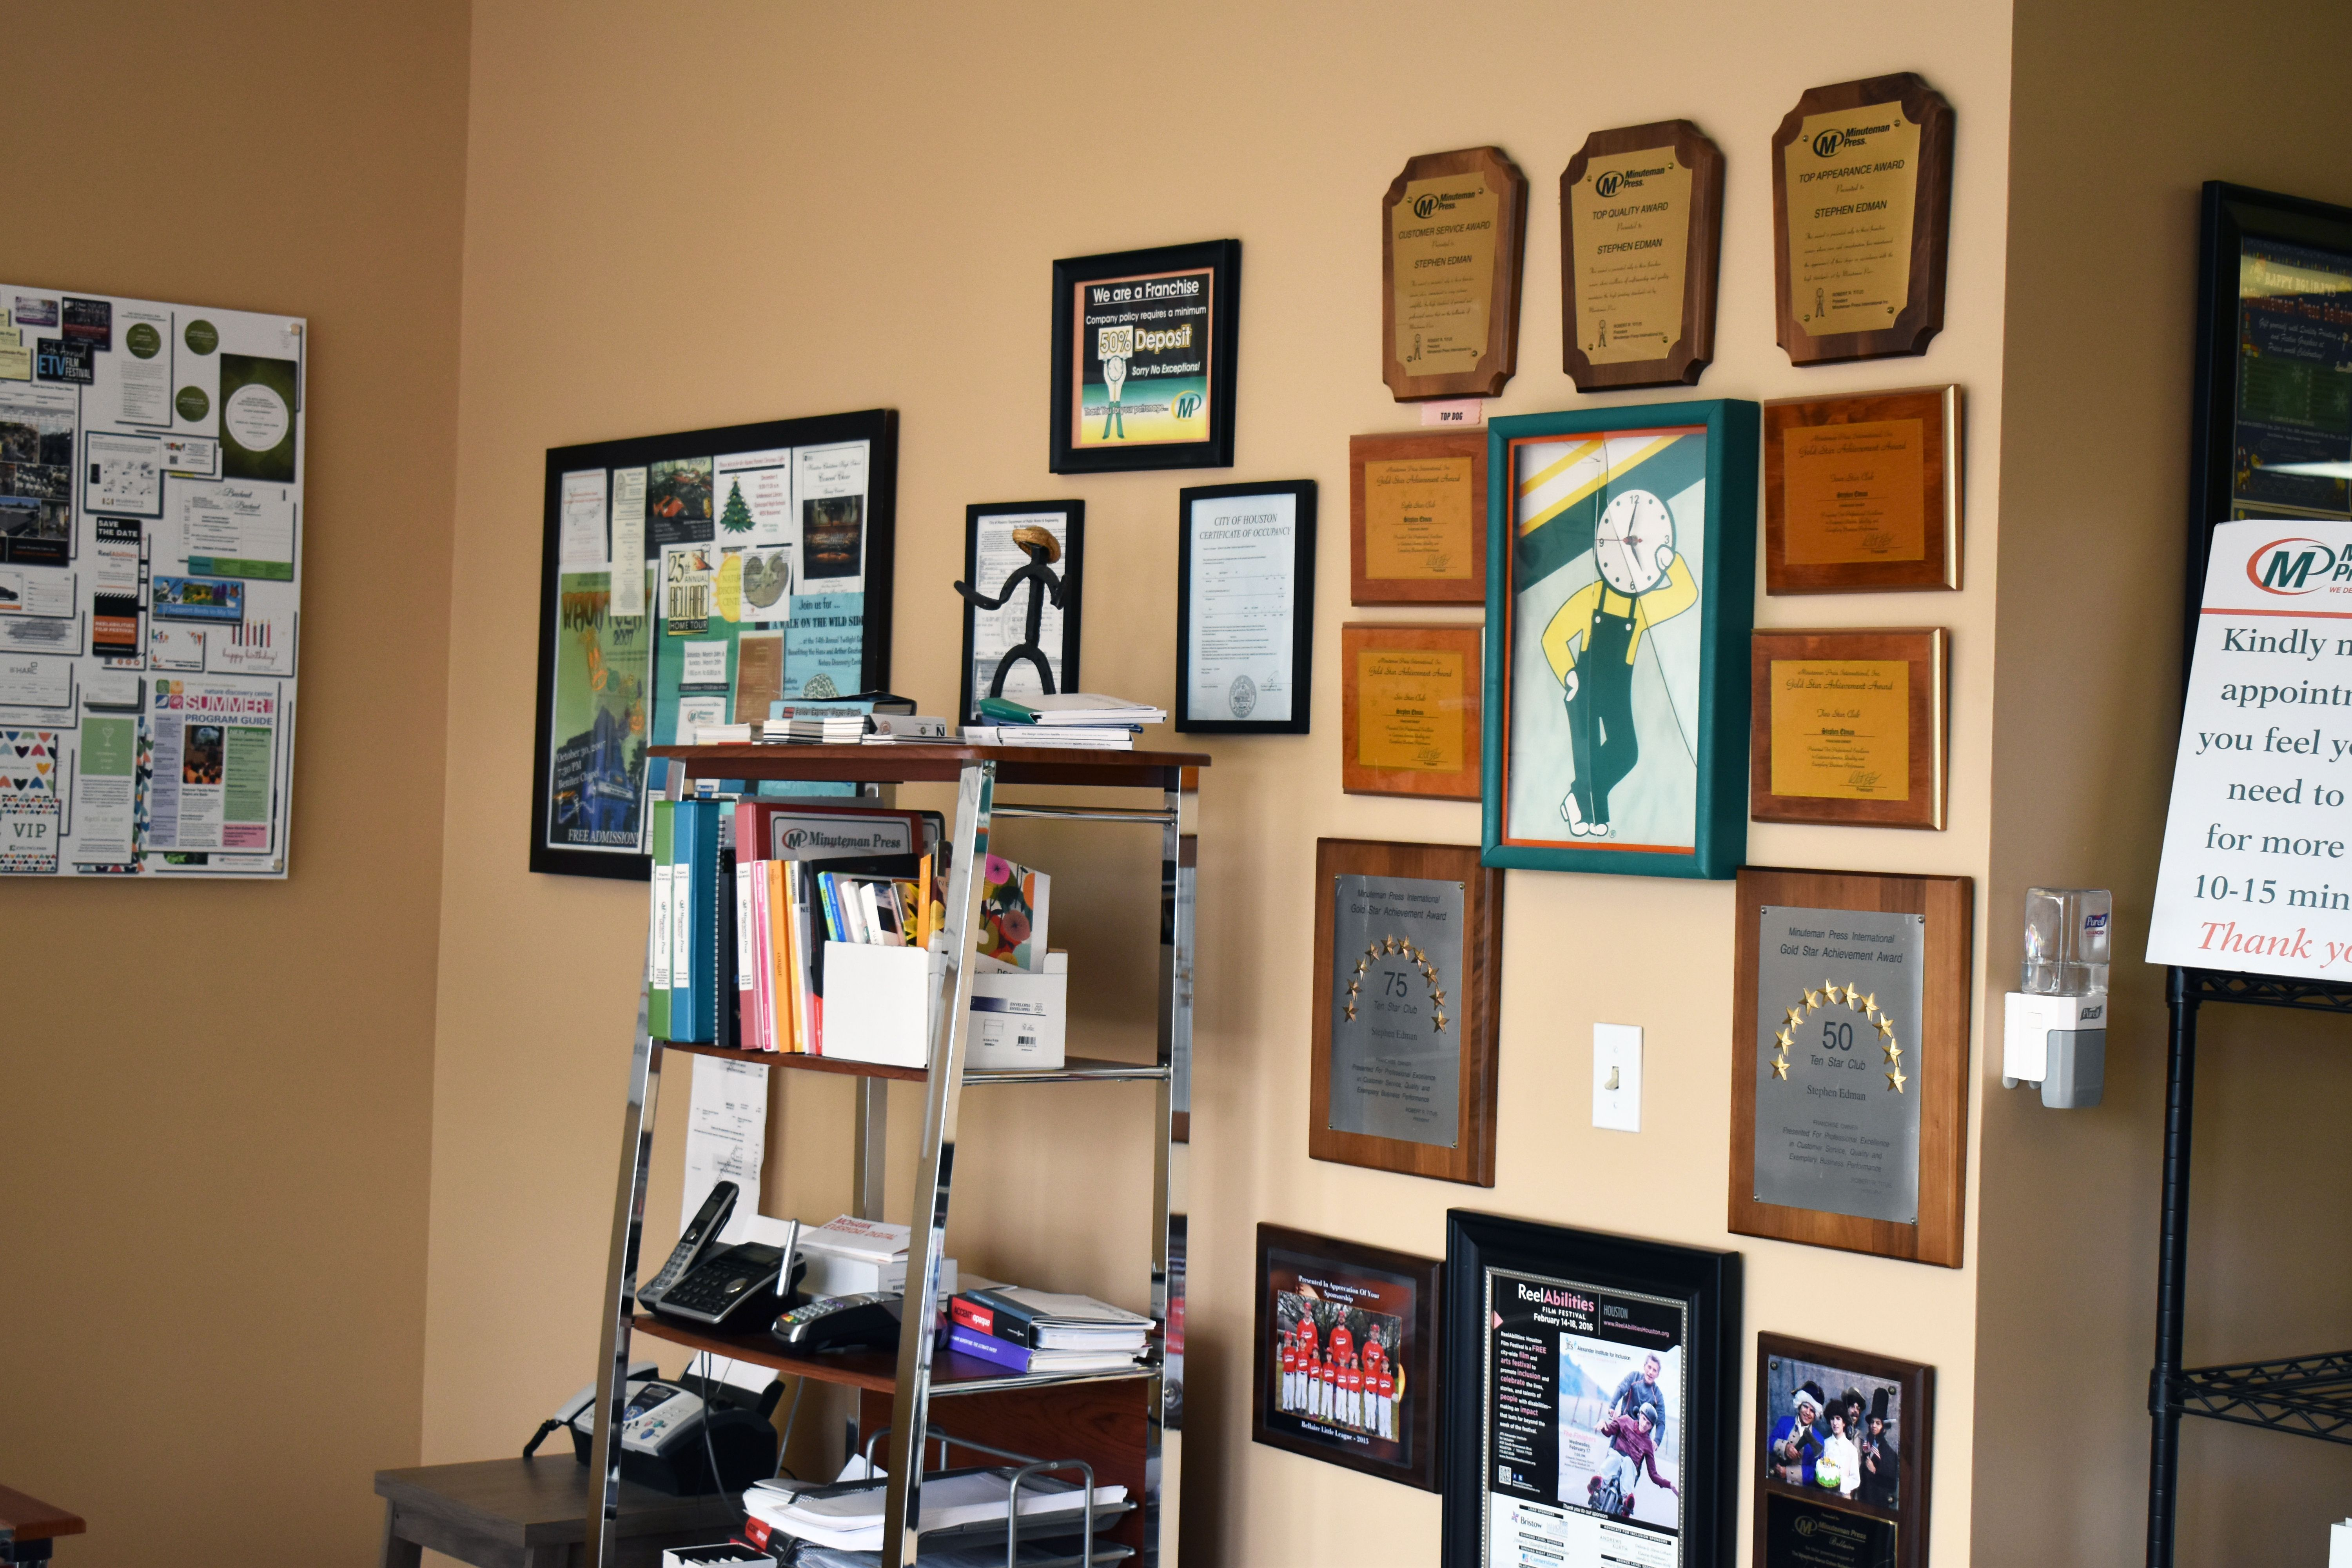 Wall of plaques and awards